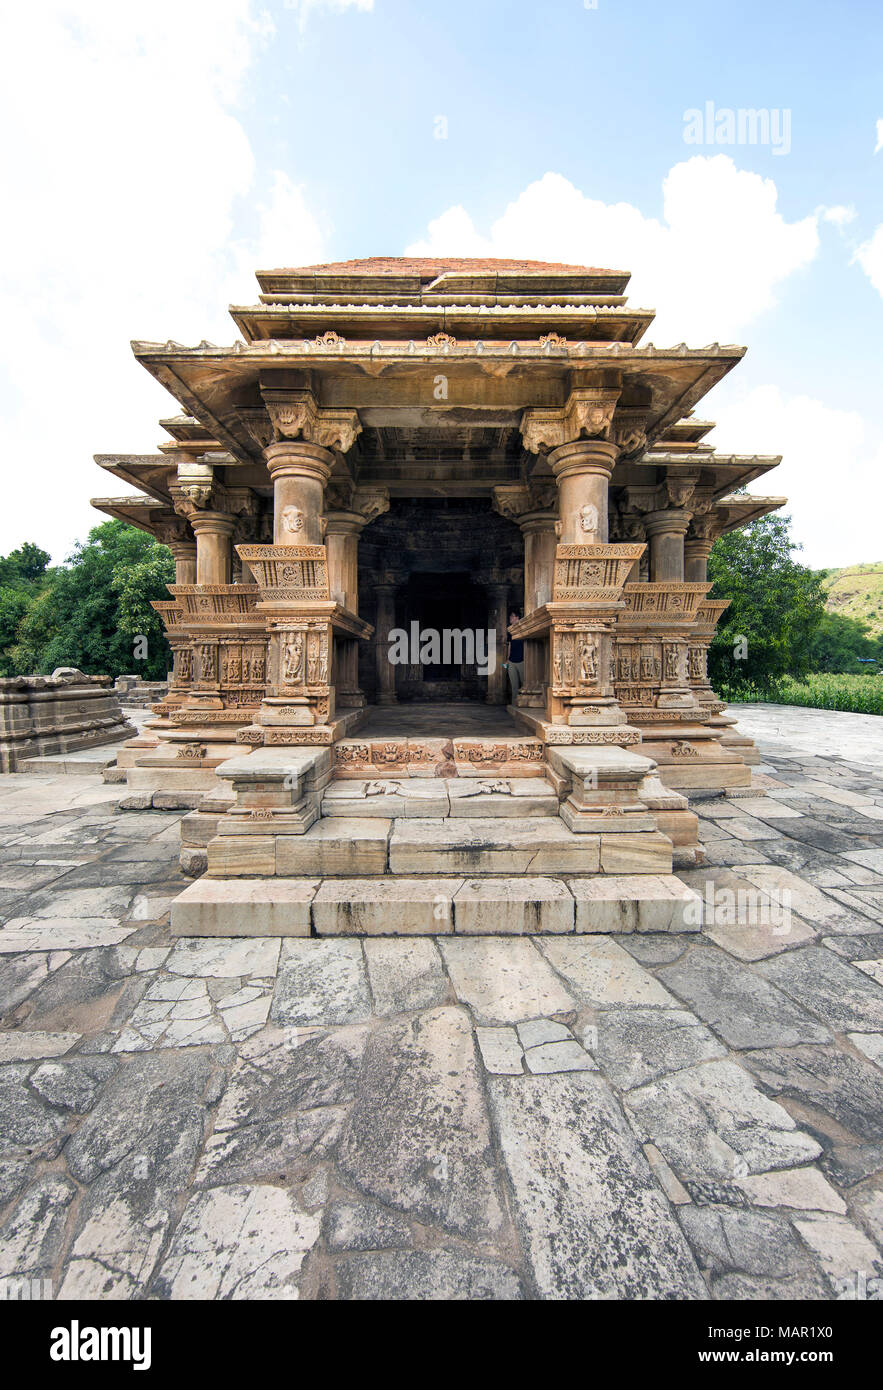 The Sas-Bahu Temples consisting of two temples and a stone archway with exquisite carvings depicting Hindu deities, near Udaipur, Rajasthan, India, As - Stock Image